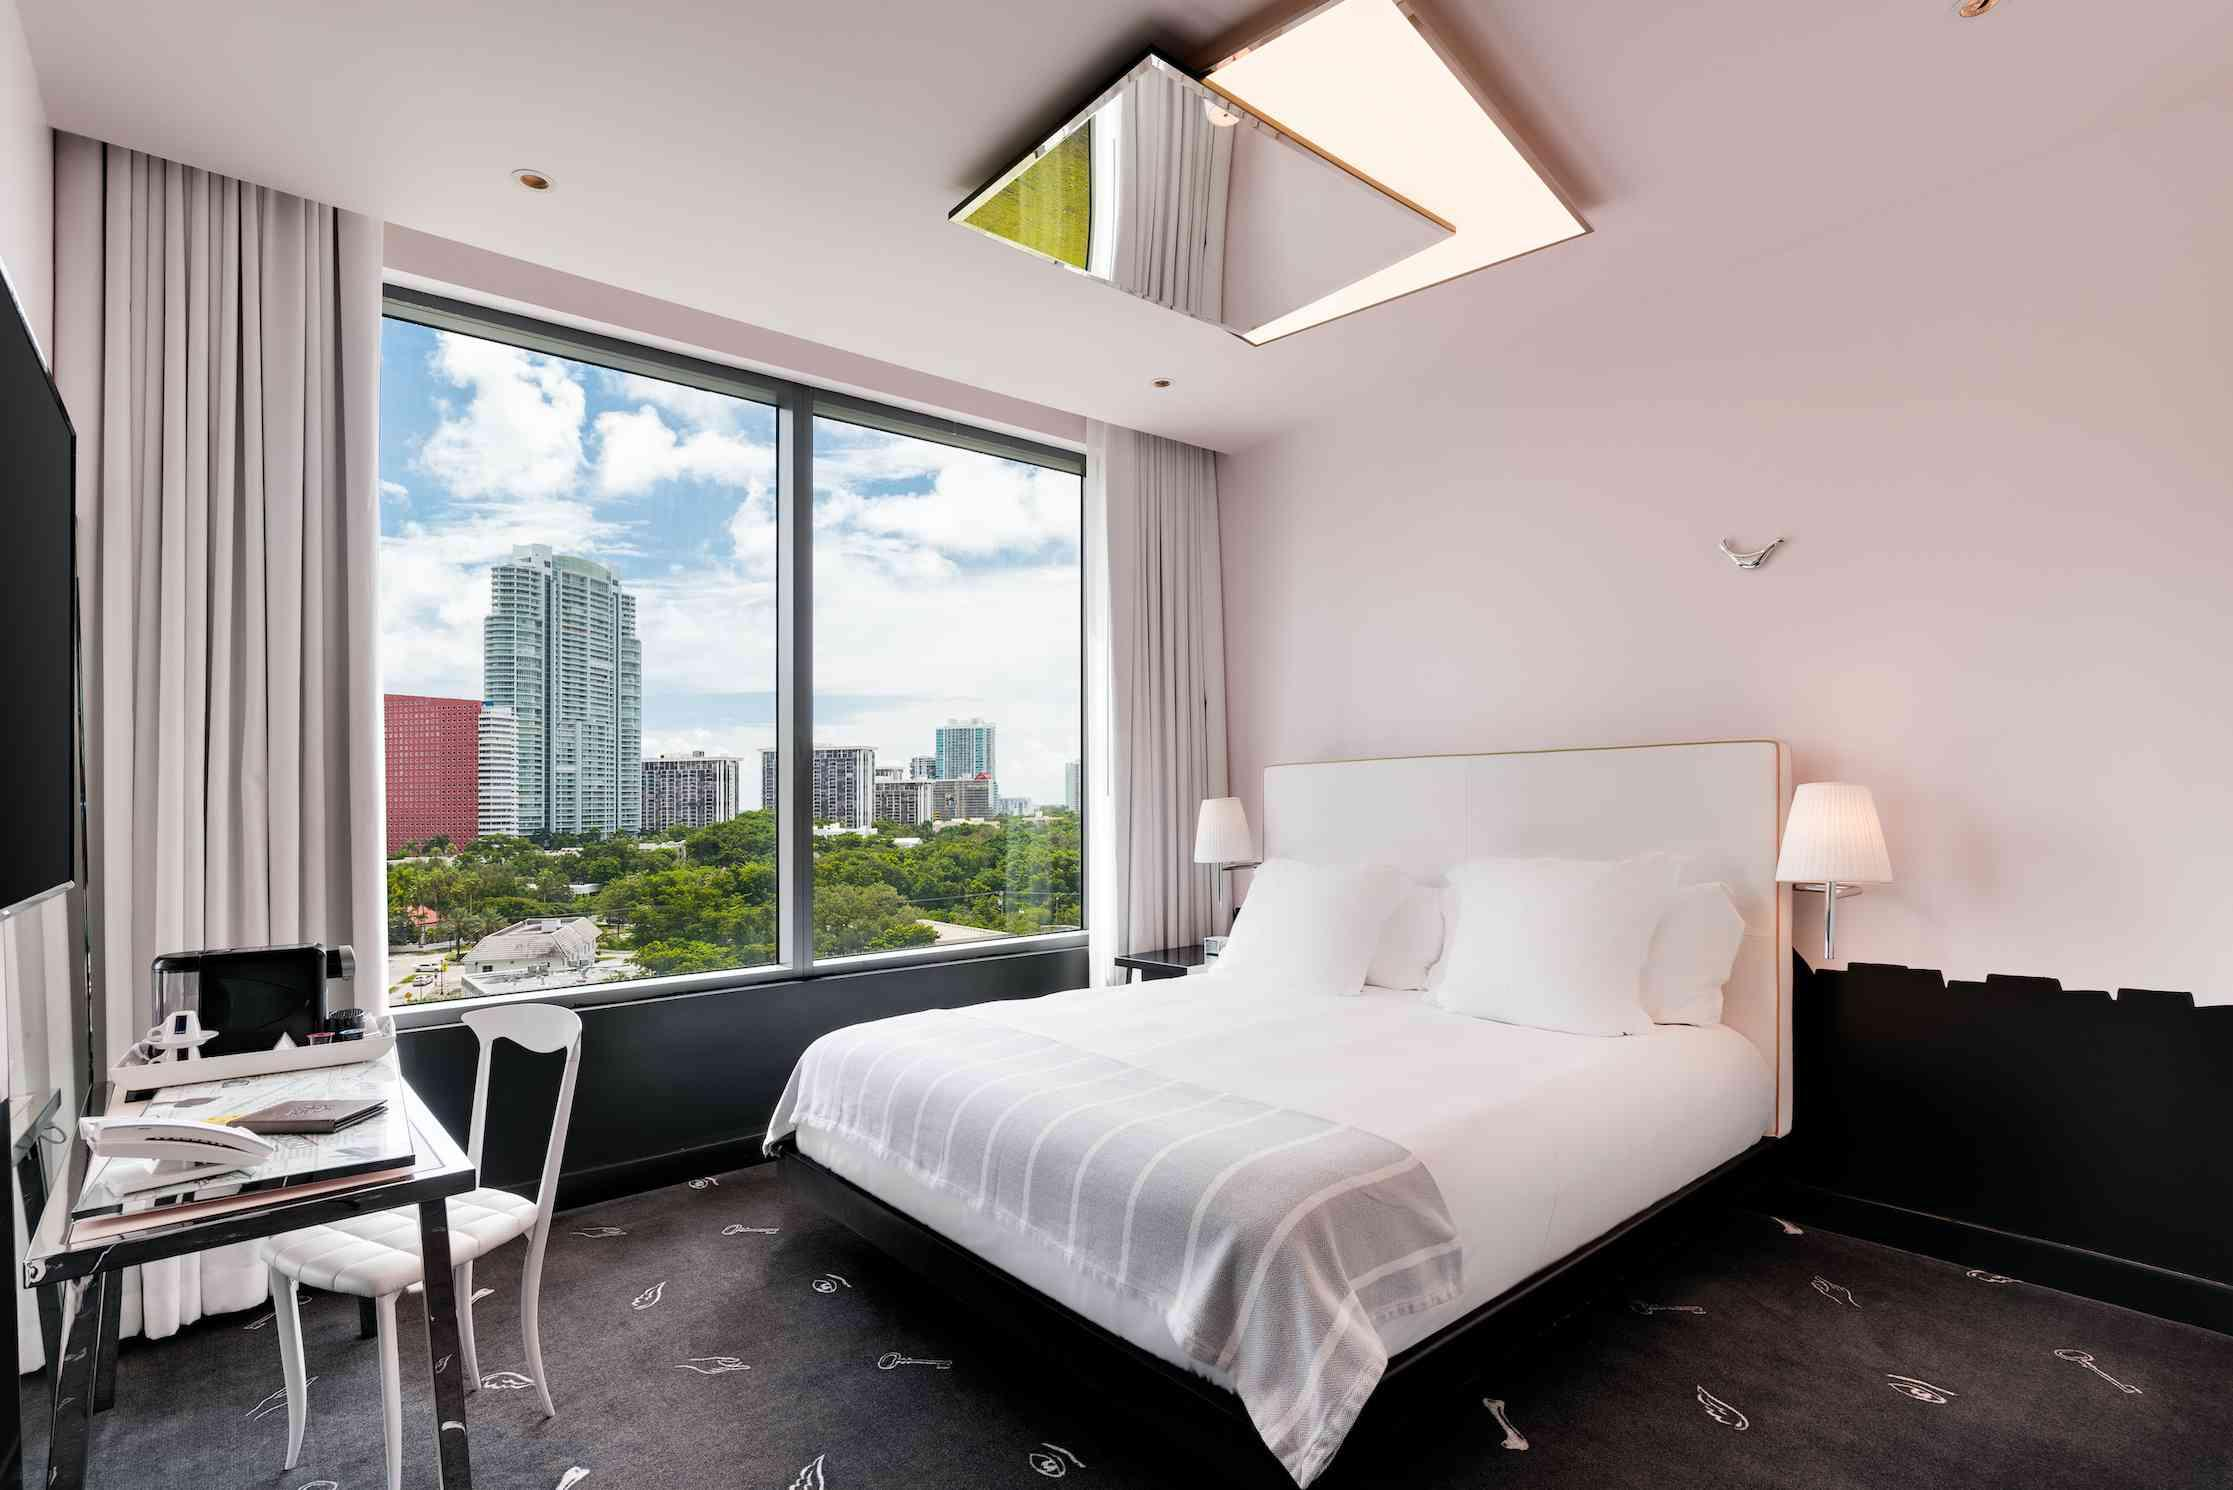 king bed in room with high ceilings and city views